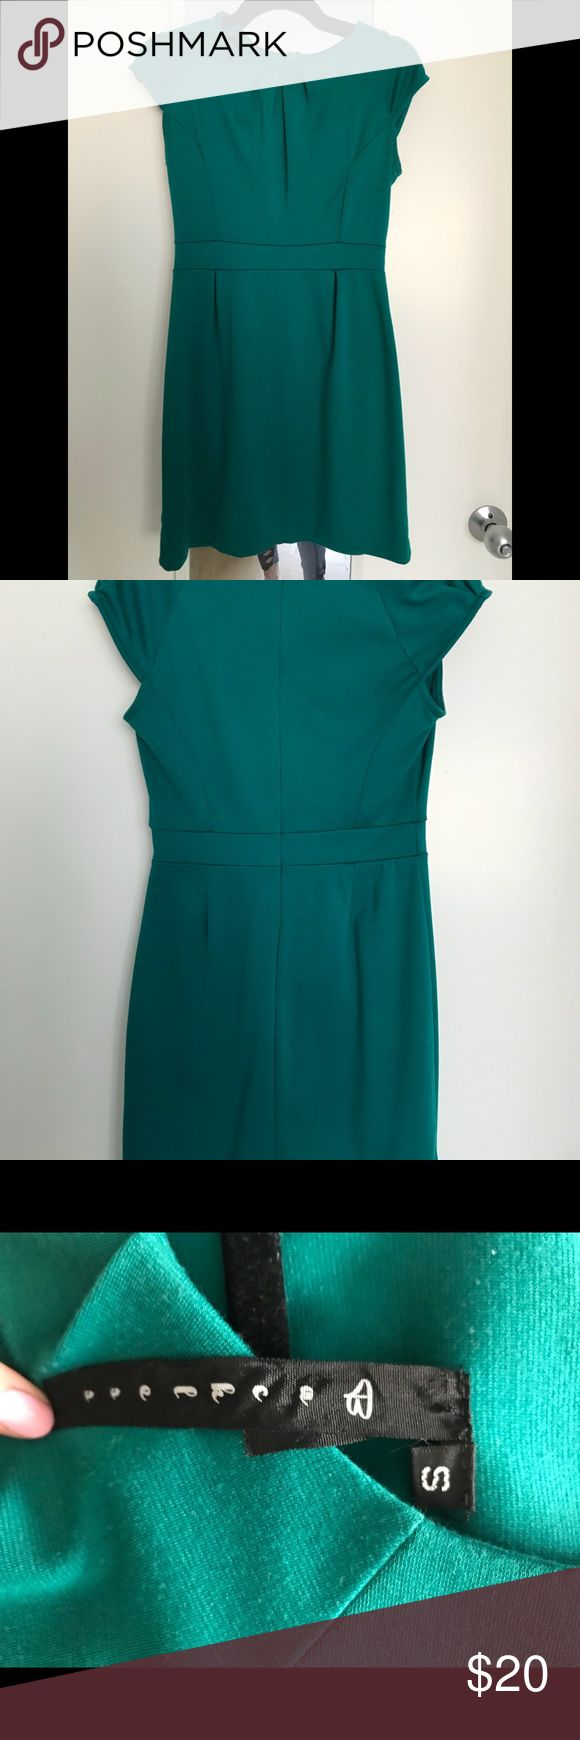 Lord n Taylor's green dress Short sleeved green dress, above the knees dress. No stains or tears Lord & Taylor Dresses Midi